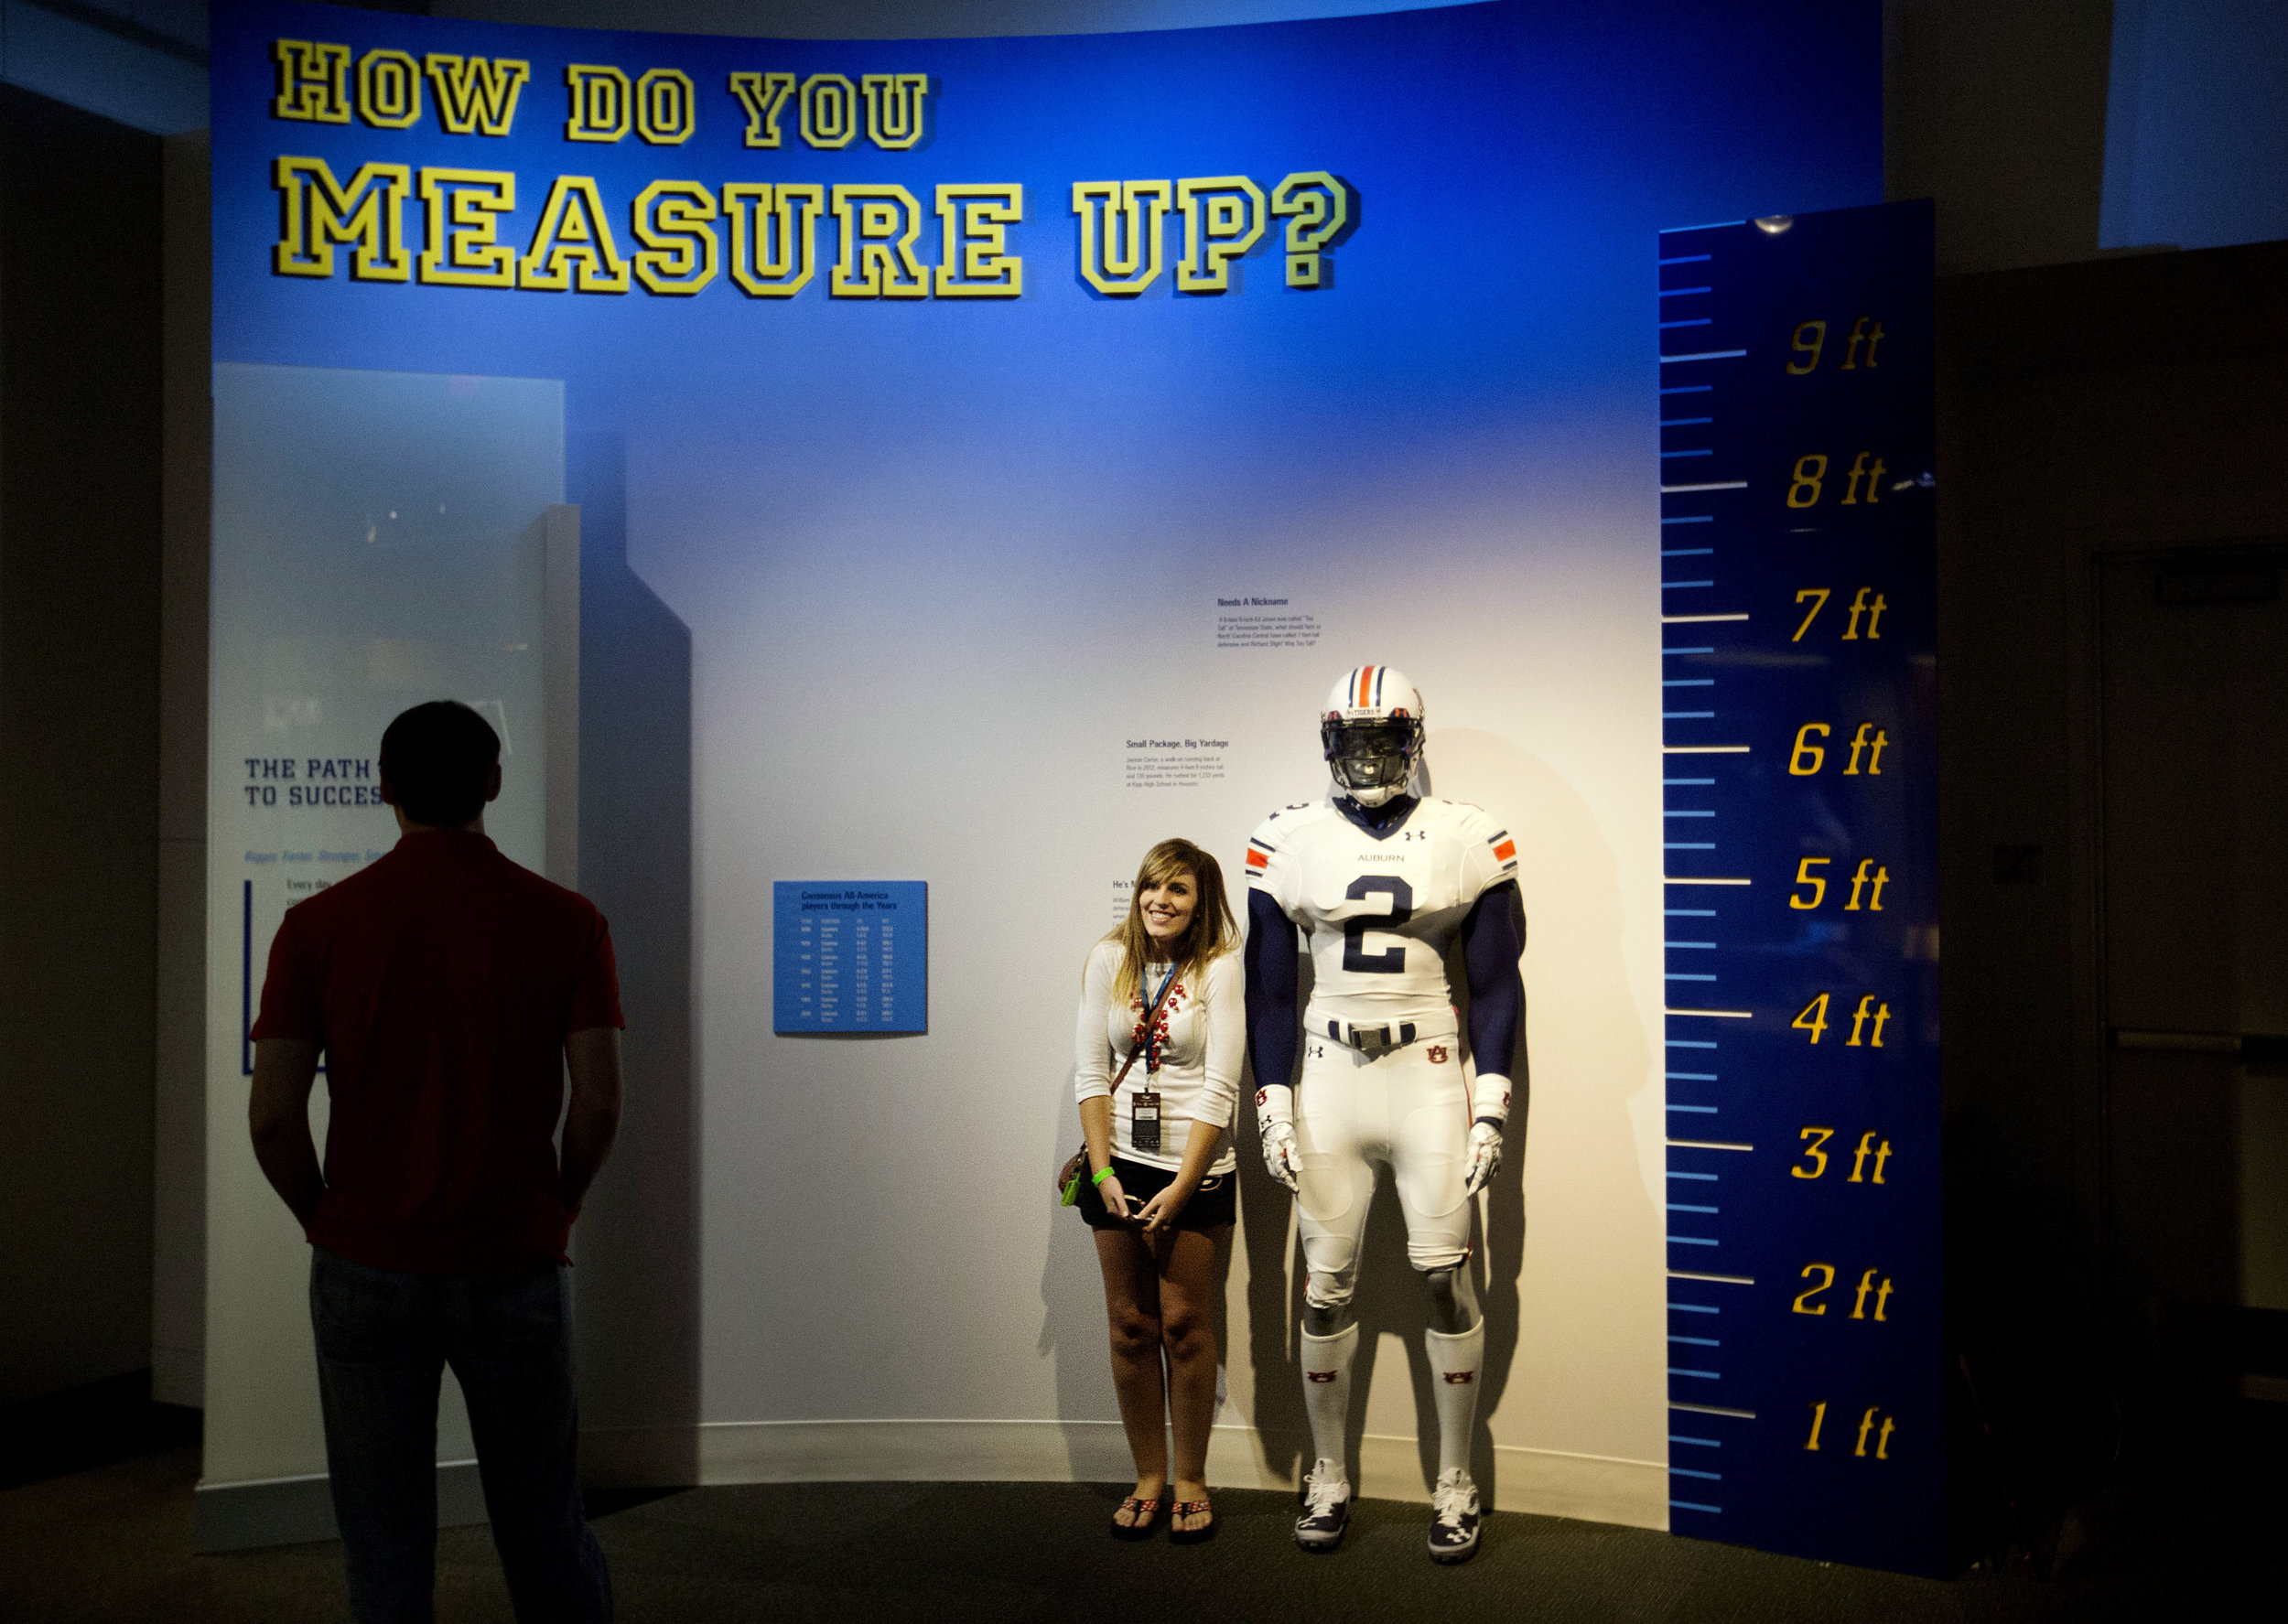 """Joanna Jinright, of Dalton, Ga., right, measures herself next to a mannequin of a football player as Anders Ravenholt, of Chattanooga, Tenn., left, looks on during a tour of the College Football Hall of Fame, Wednesday, Aug. 13, 2014, in Atlanta. One hundred contest winners who wrote an essay detailing their love of college football were selected to stay with a guest overnight in Atlanta's College Football Hall of Fame before its grand opening and win a year's supply of Chick-fil-A. The crowd of 200 who came from as far away as Hawaii were among the first to experience the College Football Hall of Fame and Chick-fil-A Fan experience before it opens to the public on Aug. 23. After touring the exhibits guest were served dinner on the football field before pitching their tents on the turf and settling in for the night as college football themed movies such as """"Rudy""""were played on the jumbotron. The hall was previously located in South Bend, Indiana, but was plagued by poor attendance. (AP Photo/David Goldman)"""